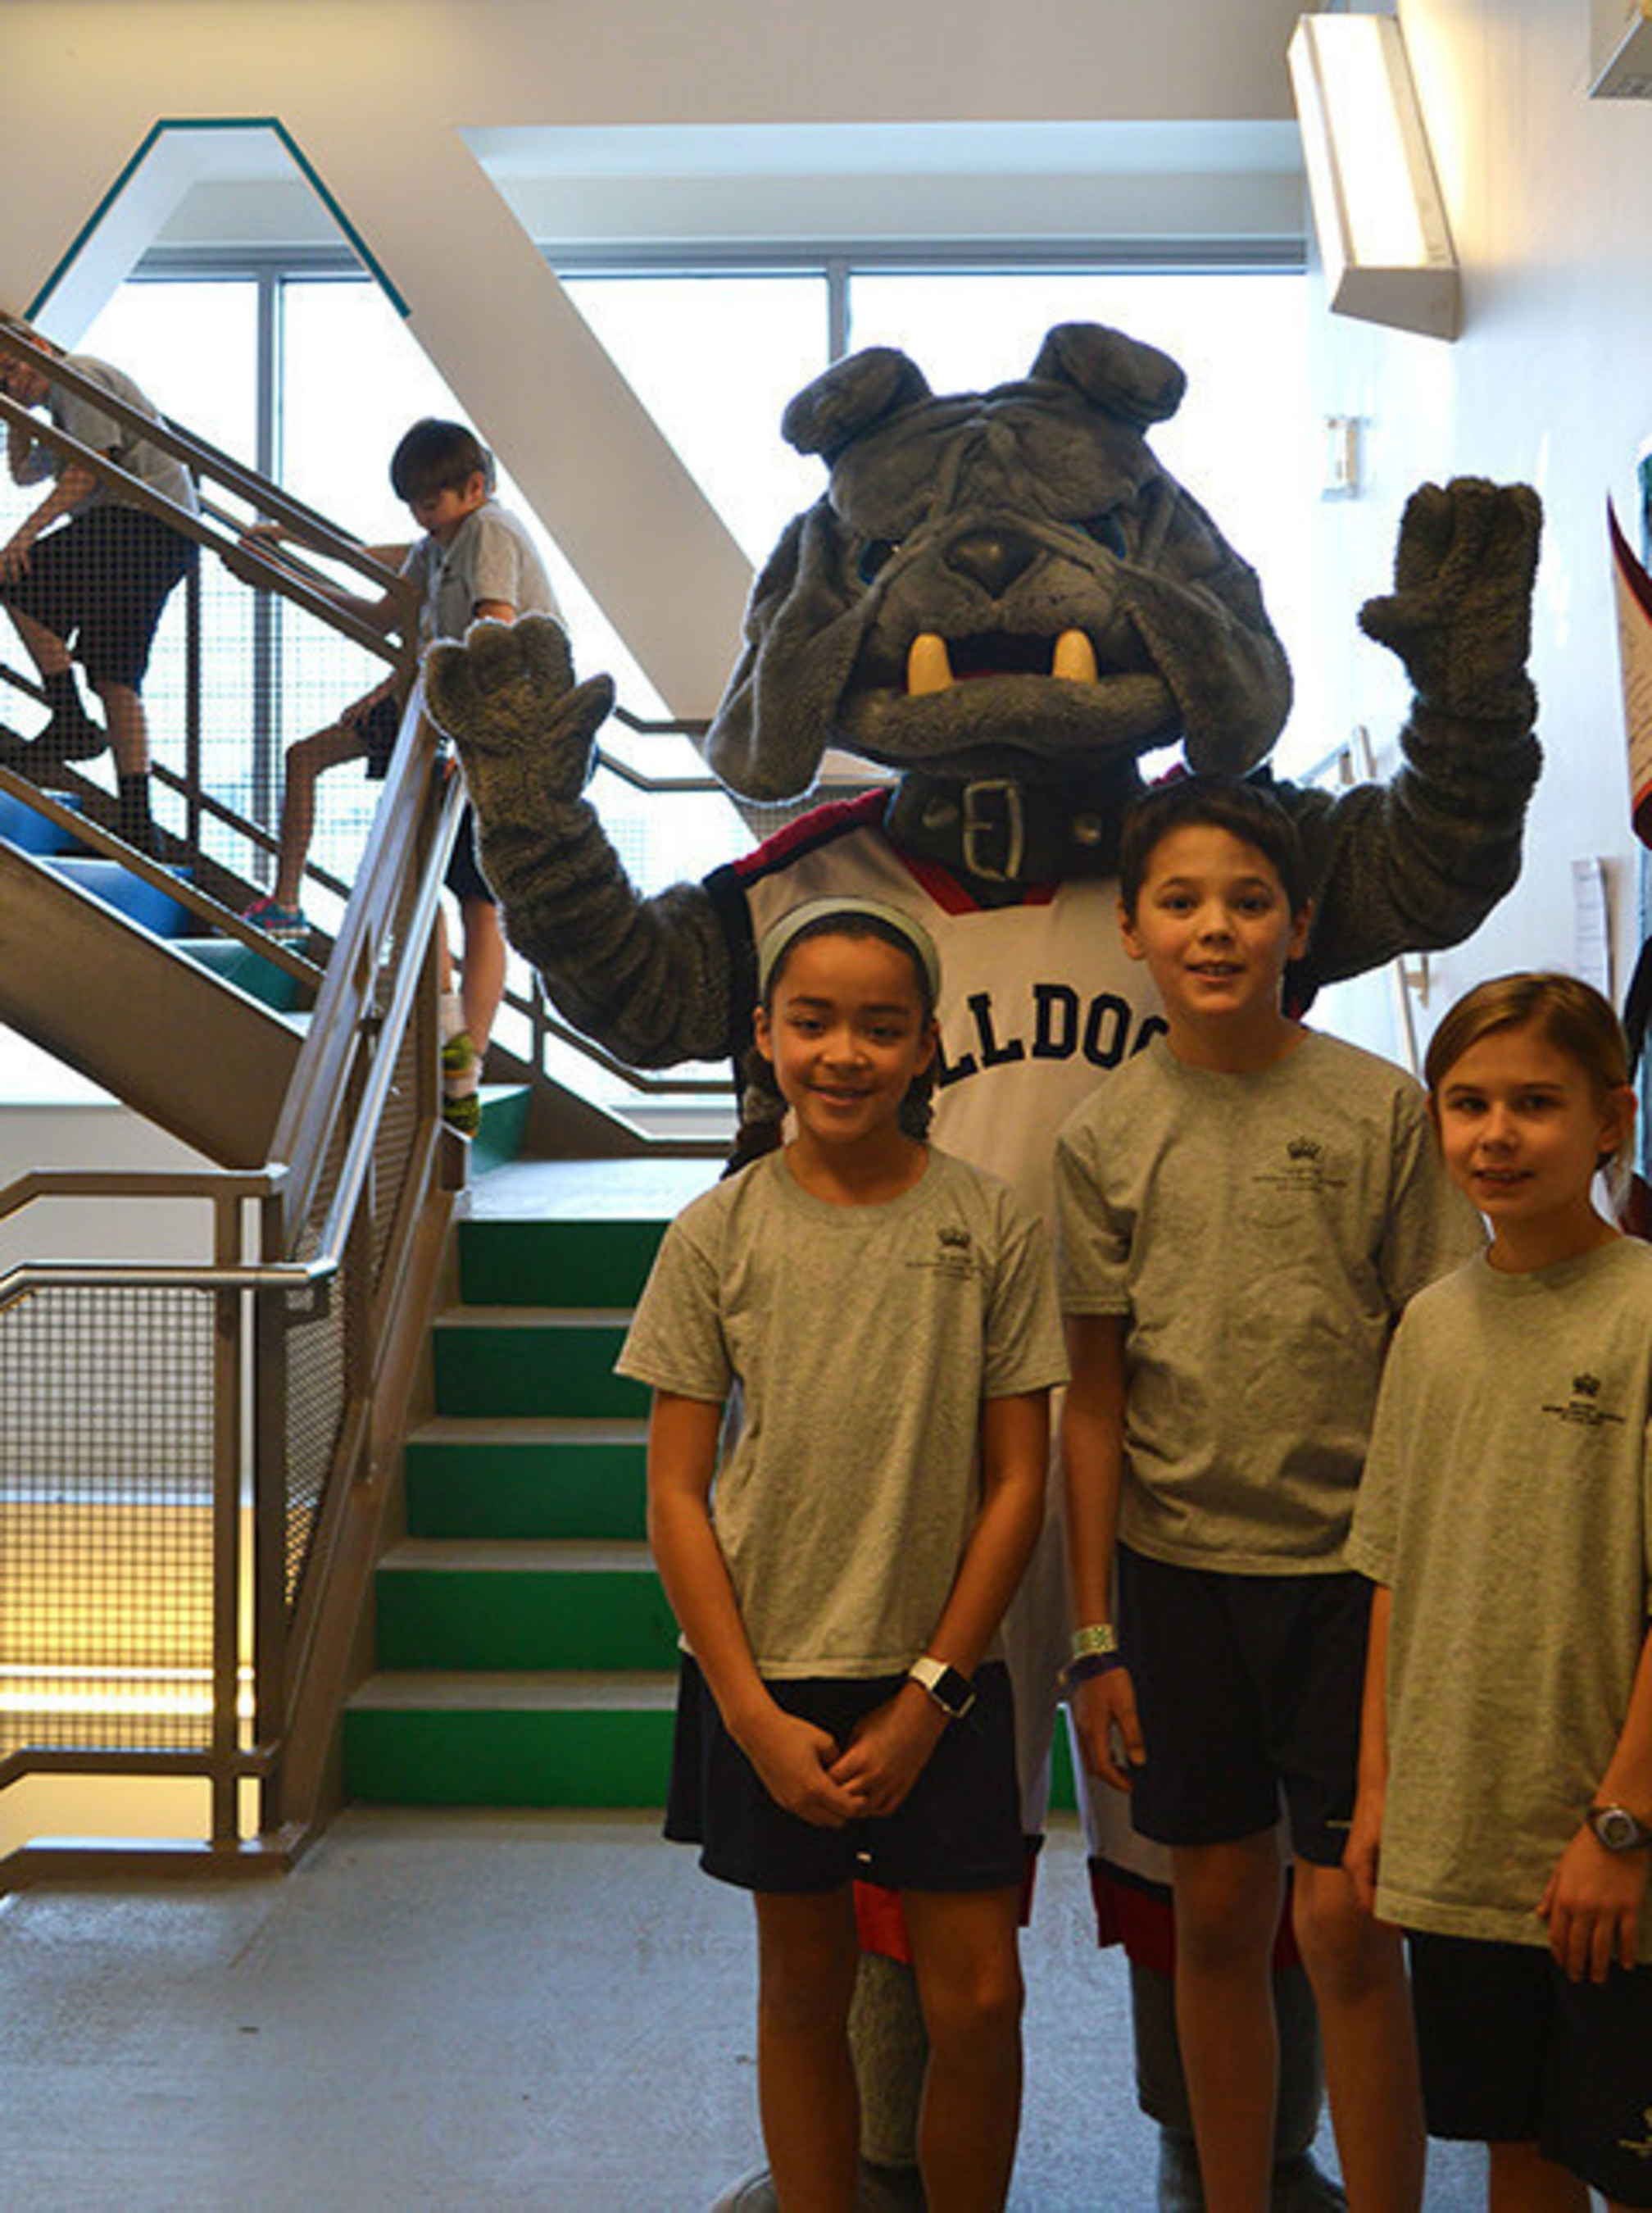 British International School of Chicago students train for 2016 AON Step Up For Kids with the help of their mascot.